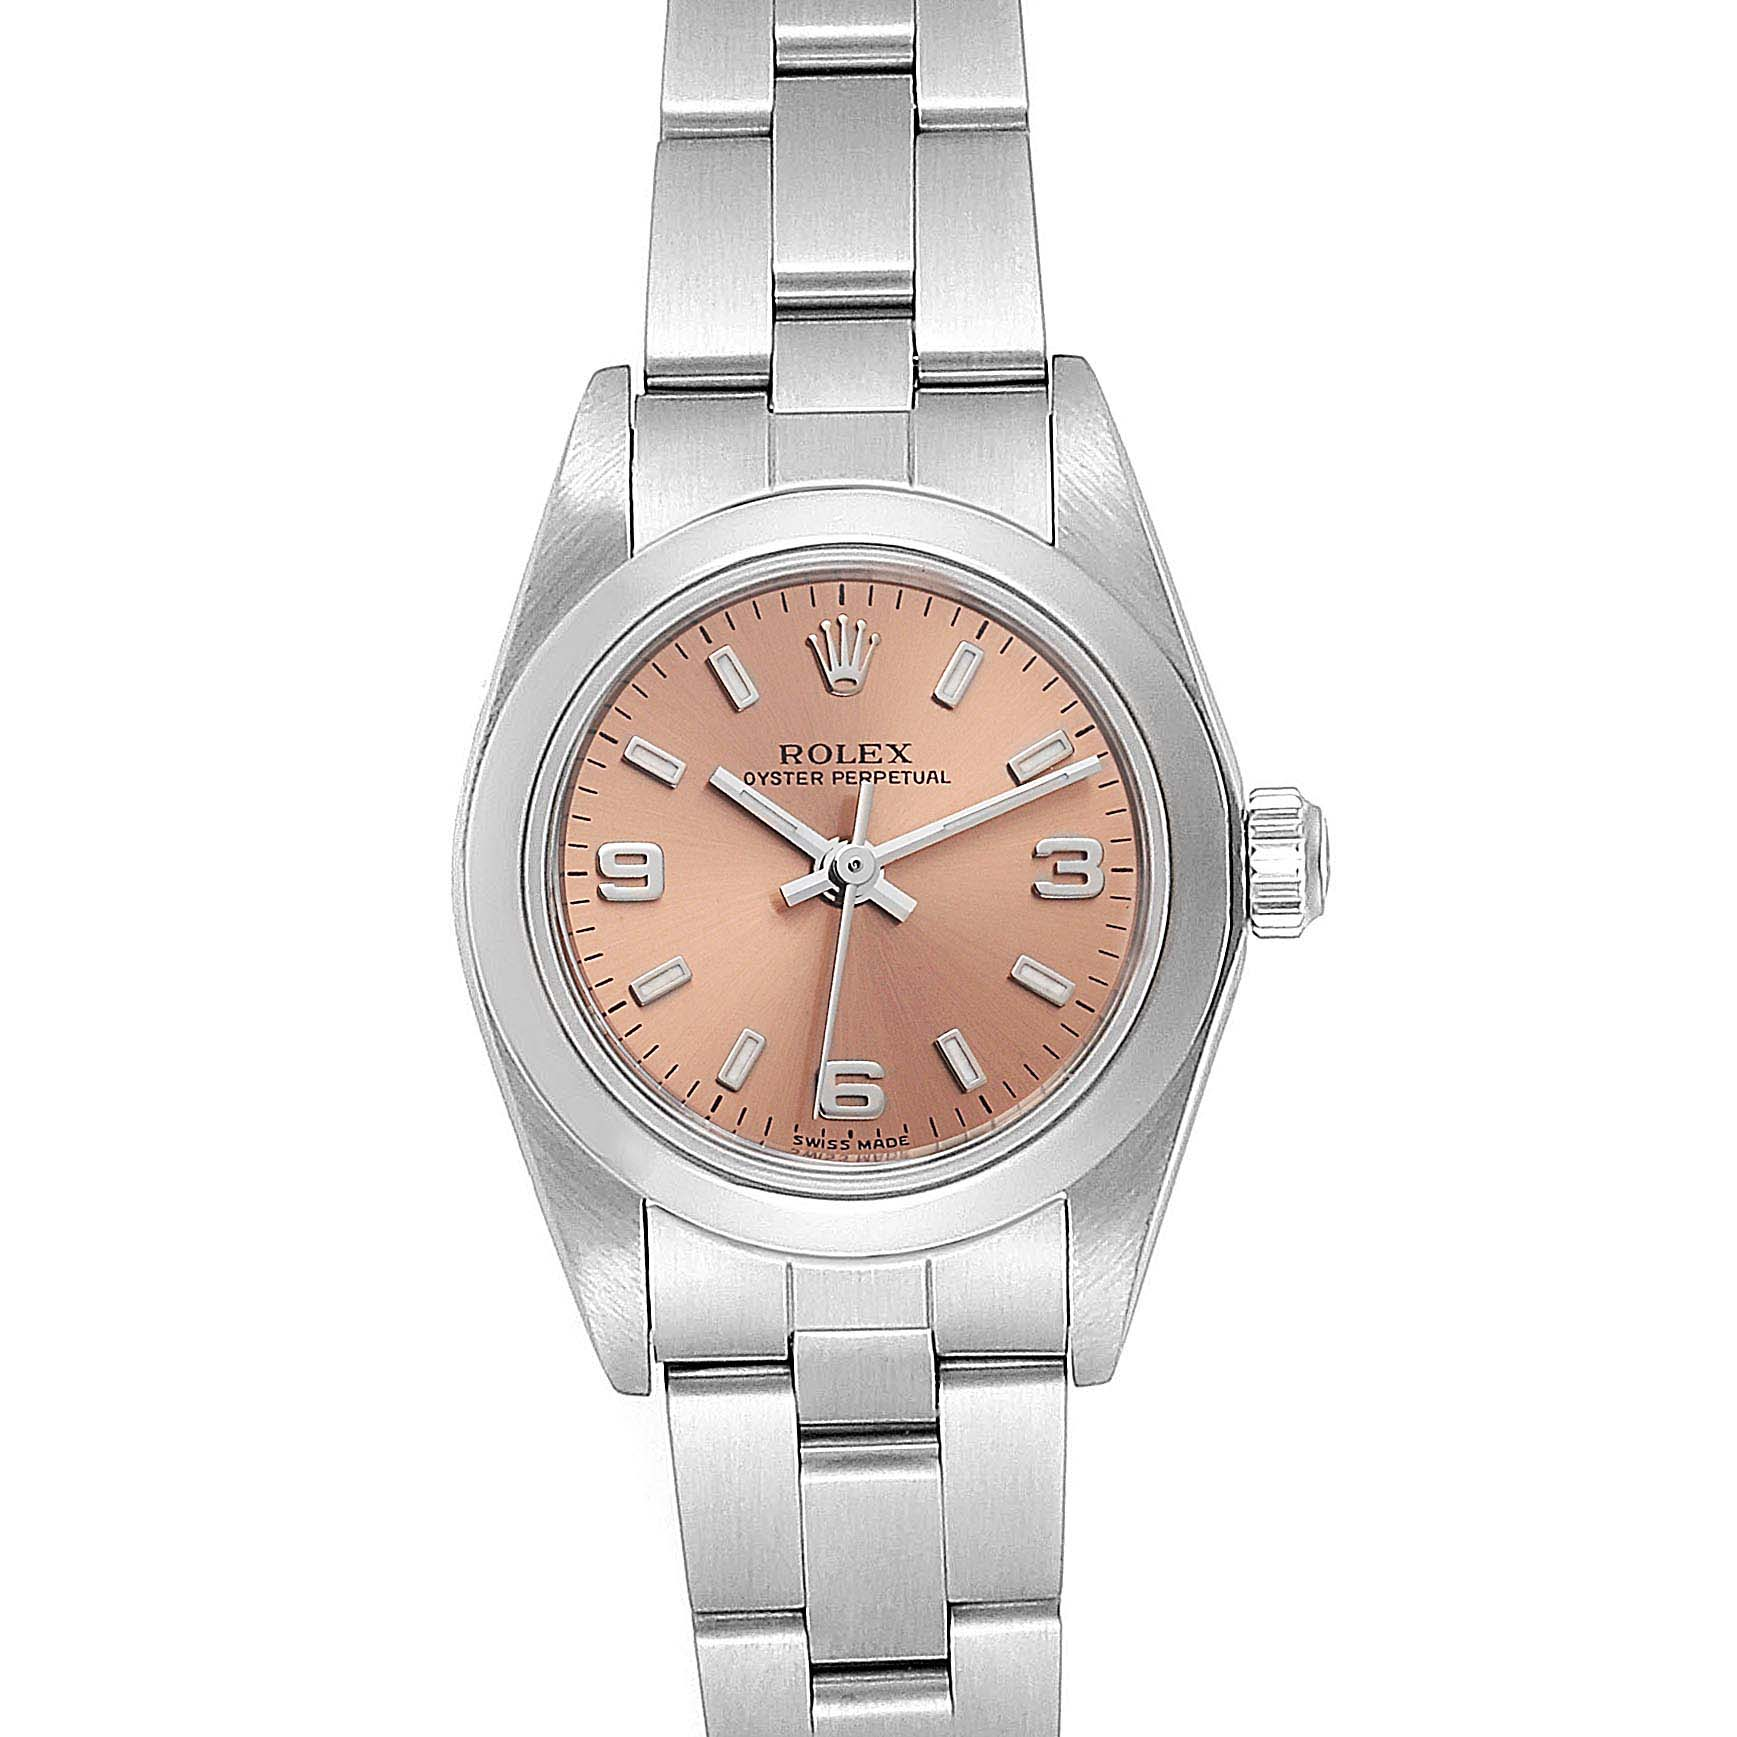 Rolex Oyster Perpetual 2 Salmon Dial Ladies Watch 76080 Box Papers